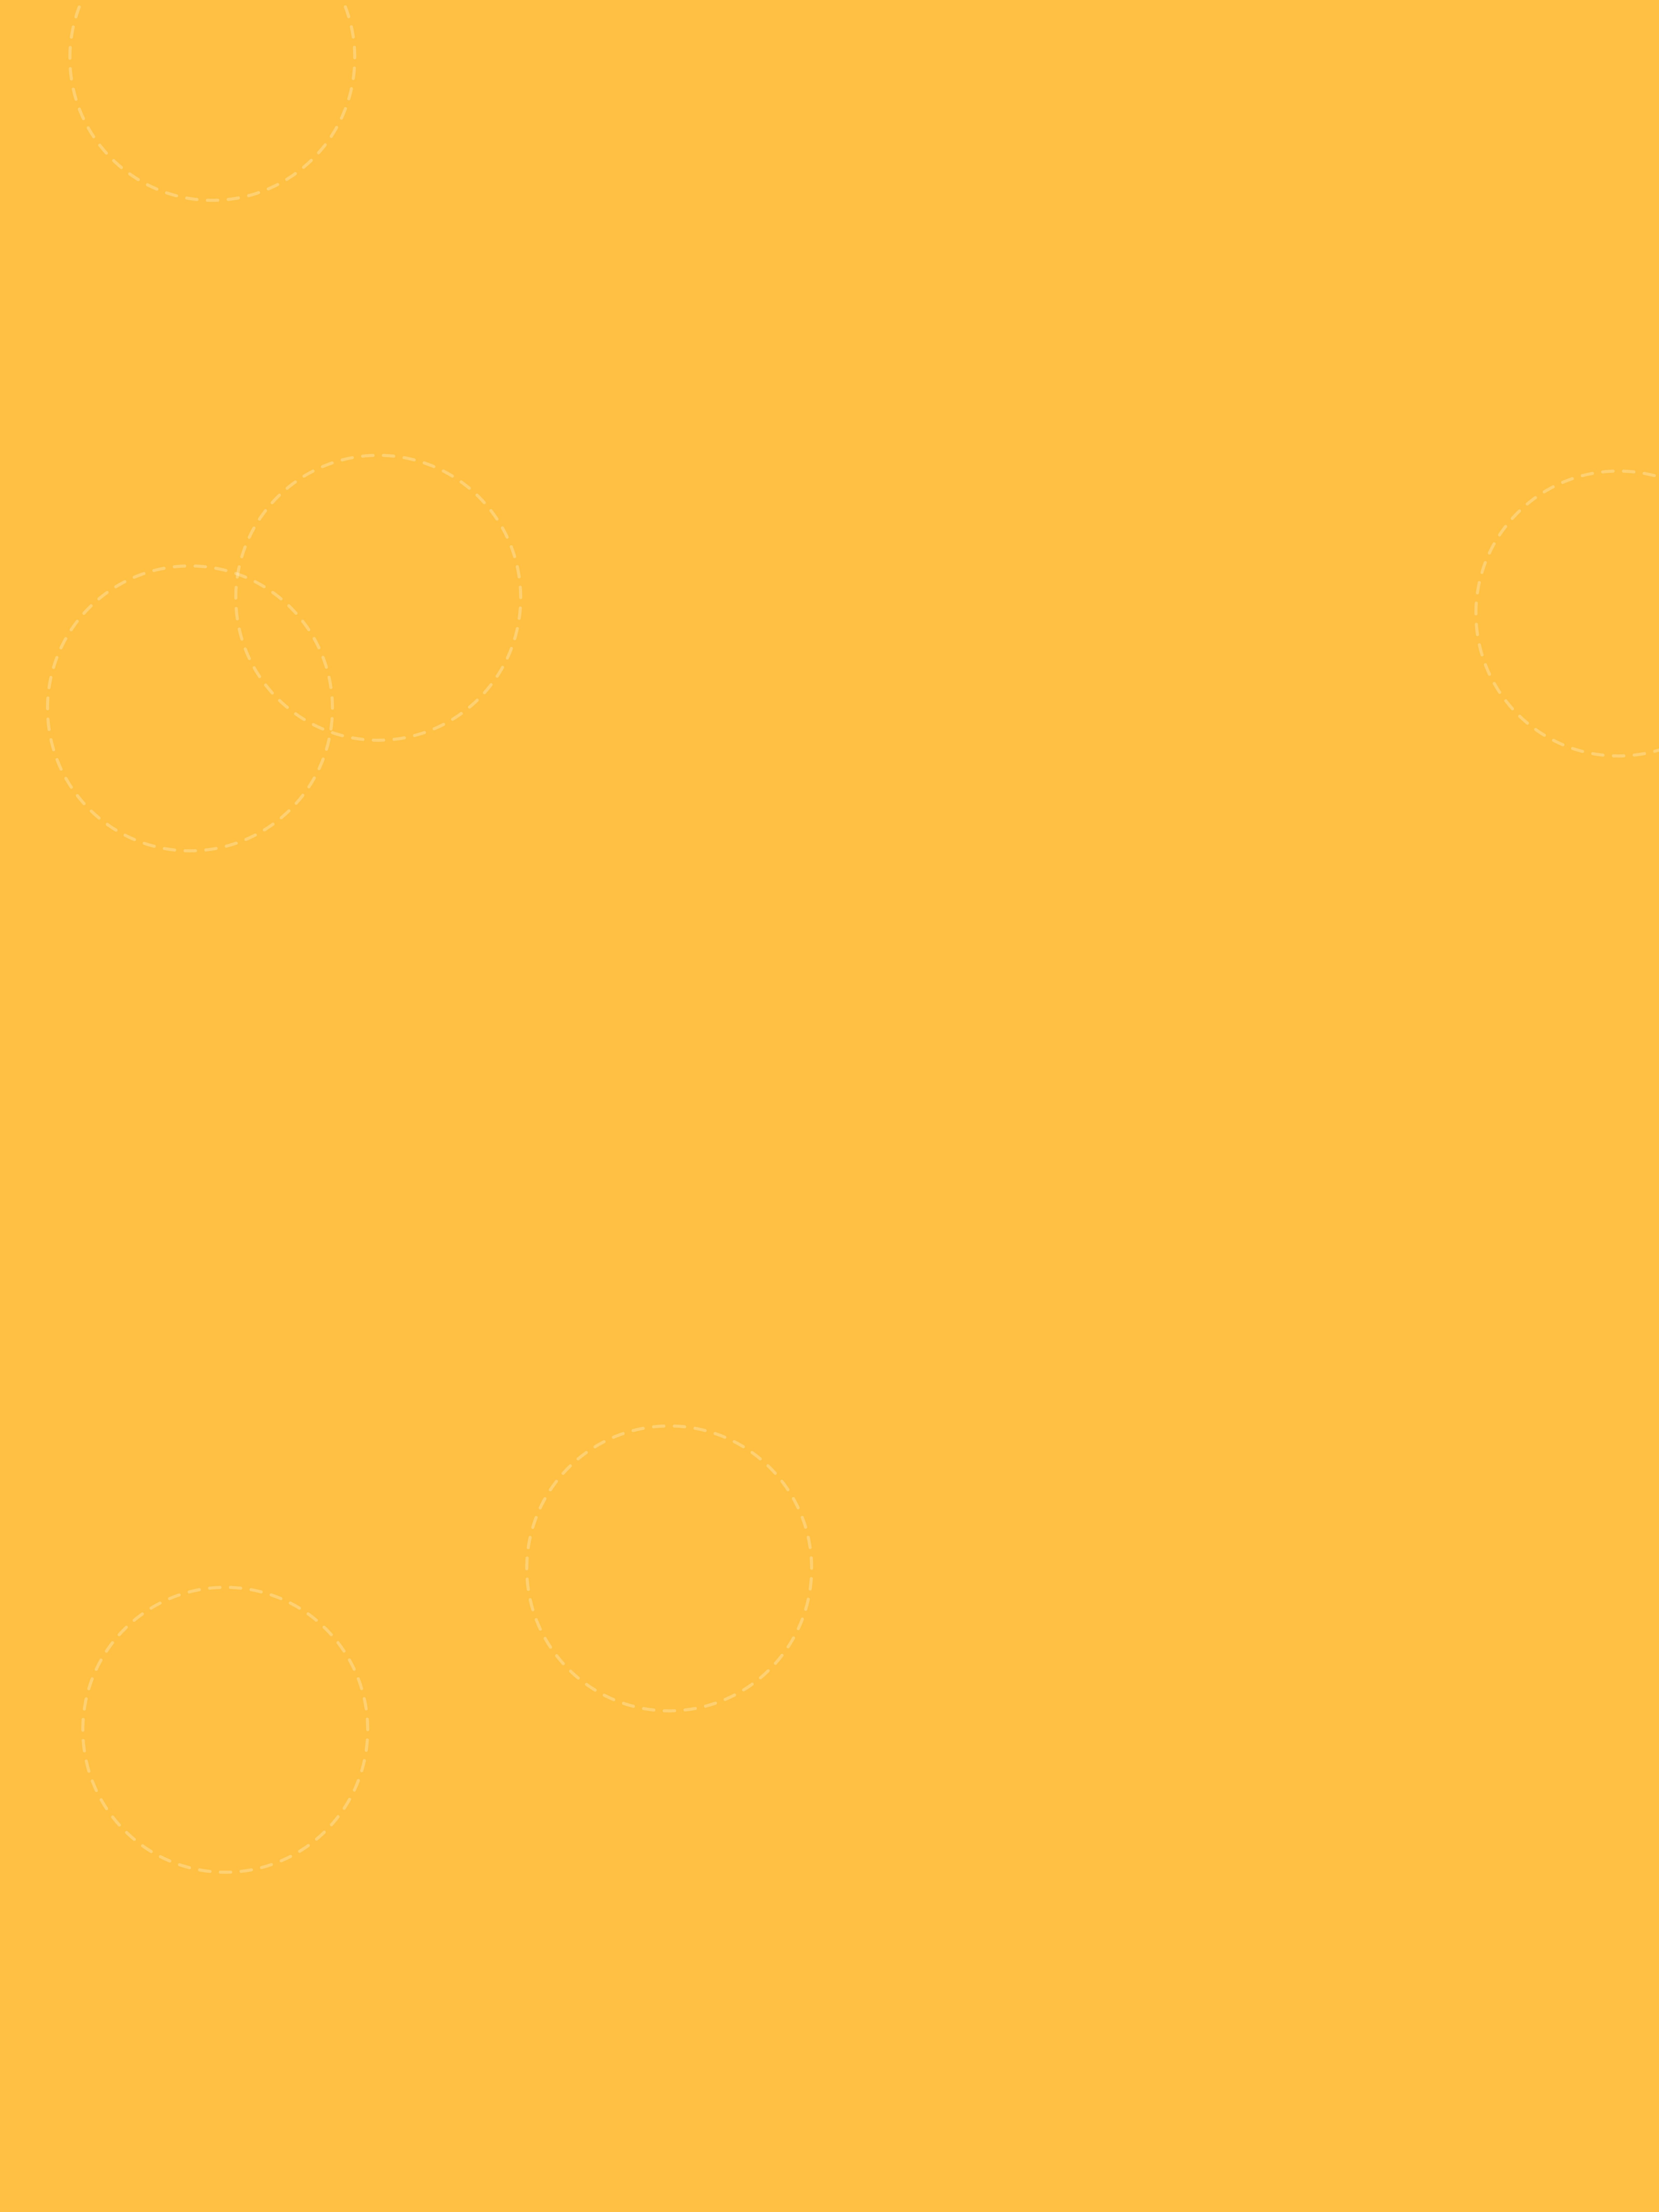 Aesthetic Yellow Text Wallpapers Top Free Aesthetic Yellow